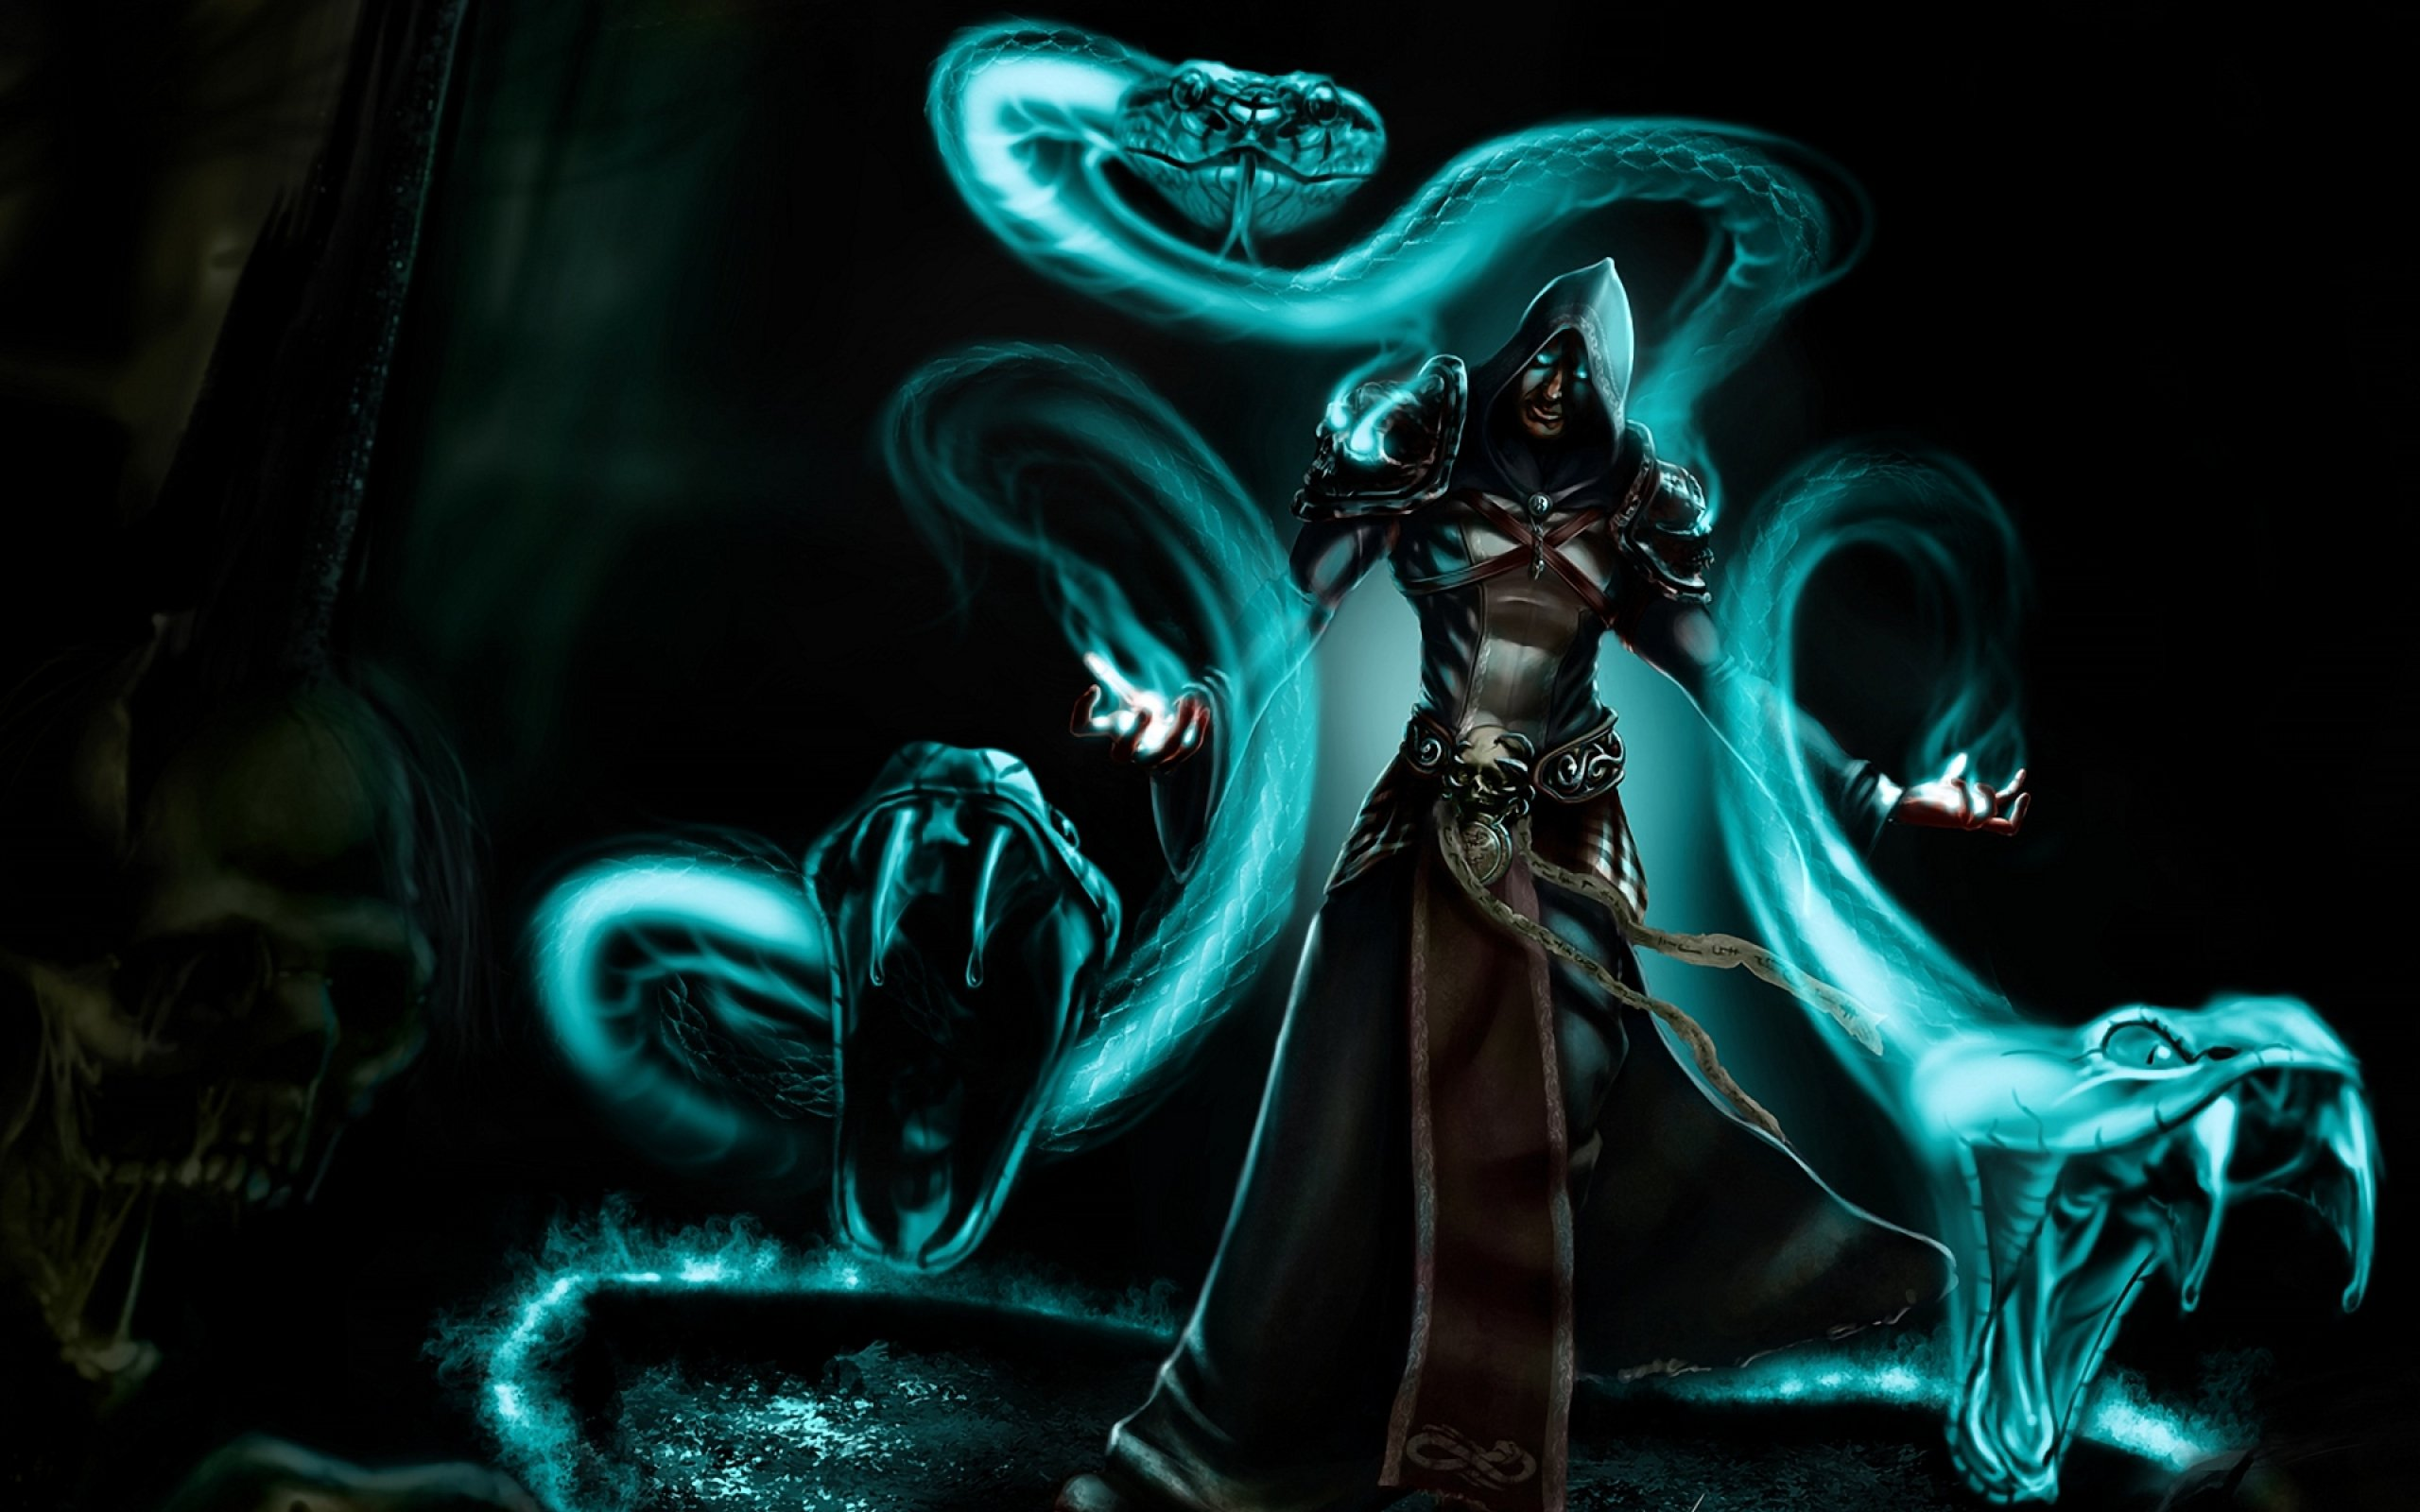 1920x1080 wizard wallpapers - photo #46